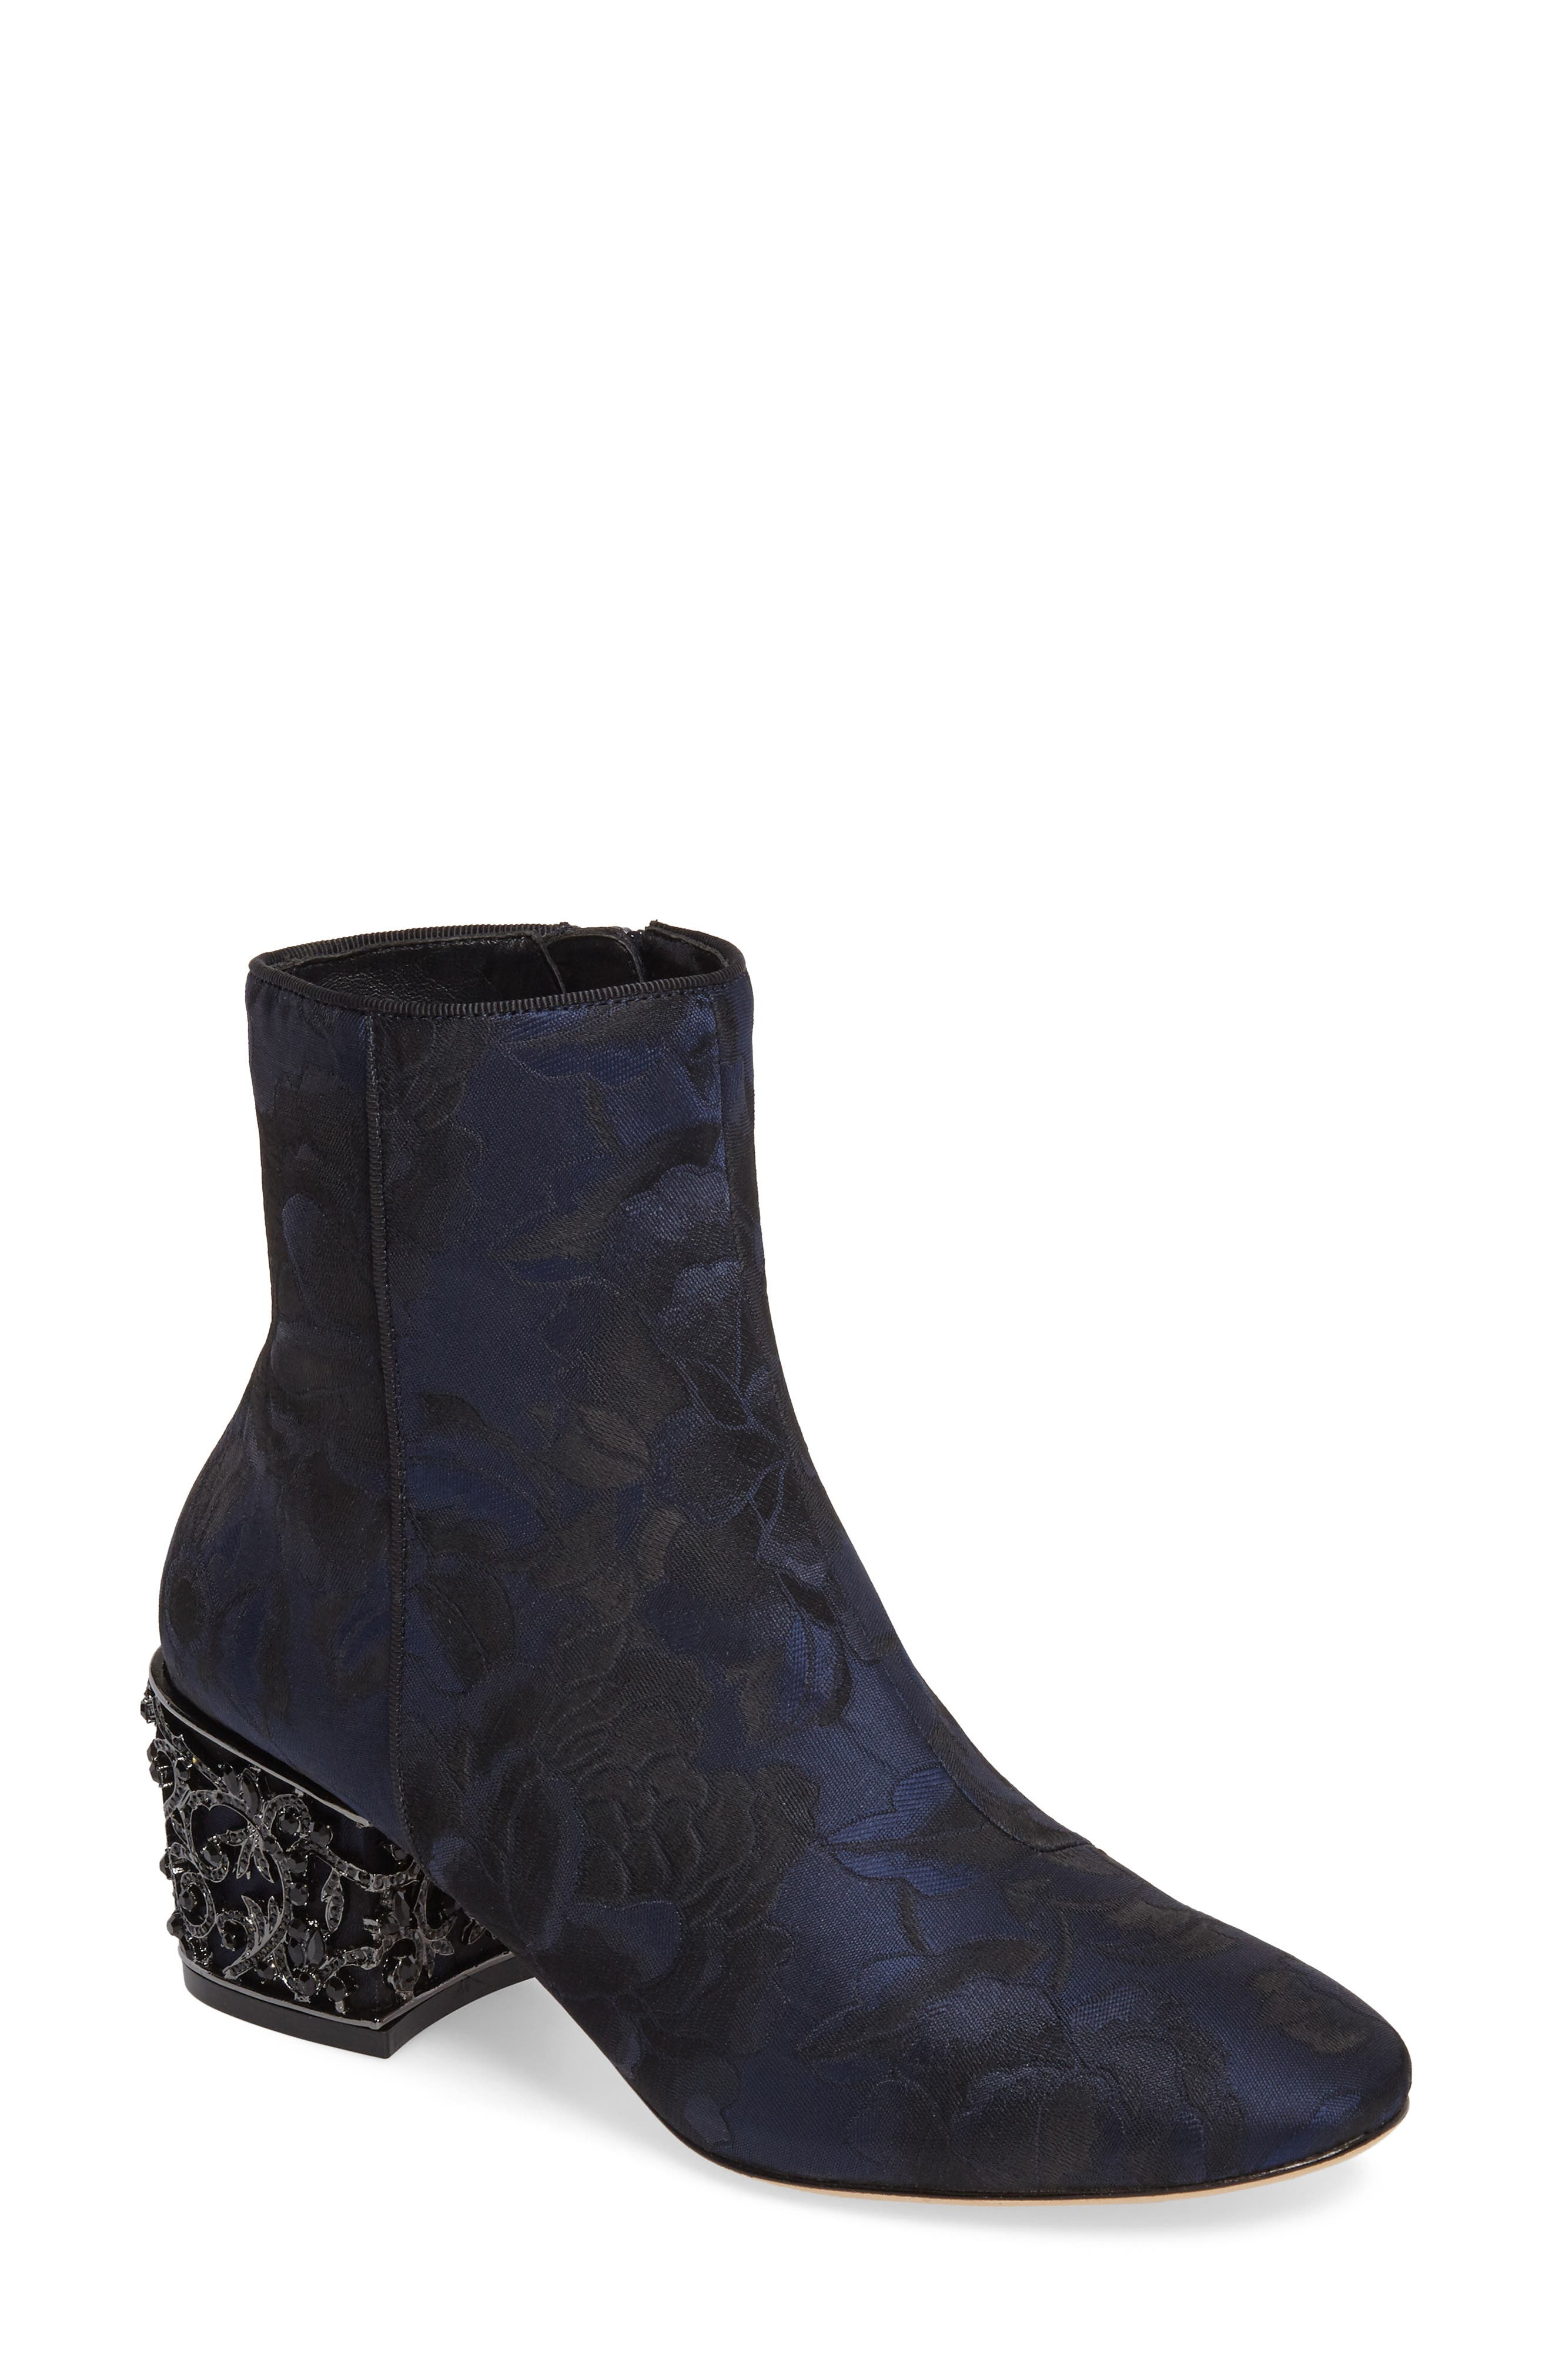 Badgley Mischka Martha Bootie,                         Main,                         color, 407